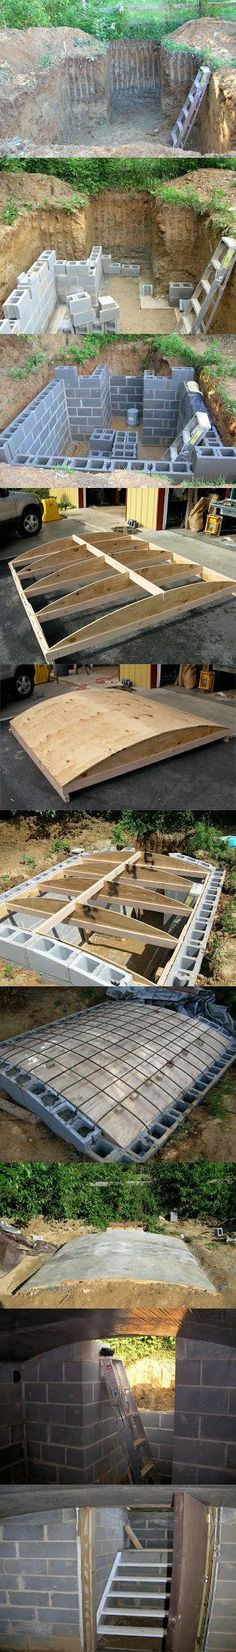 How to build a cellar with your own hands- Как построить погреб своими руками How to build a cellar with your own hands - Outdoor Projects, Home Projects, Casa Bunker, Underground Shelter, Root Cellar, Wine Cellar, Survival Shelter, Outdoor Living, Outdoor Decor